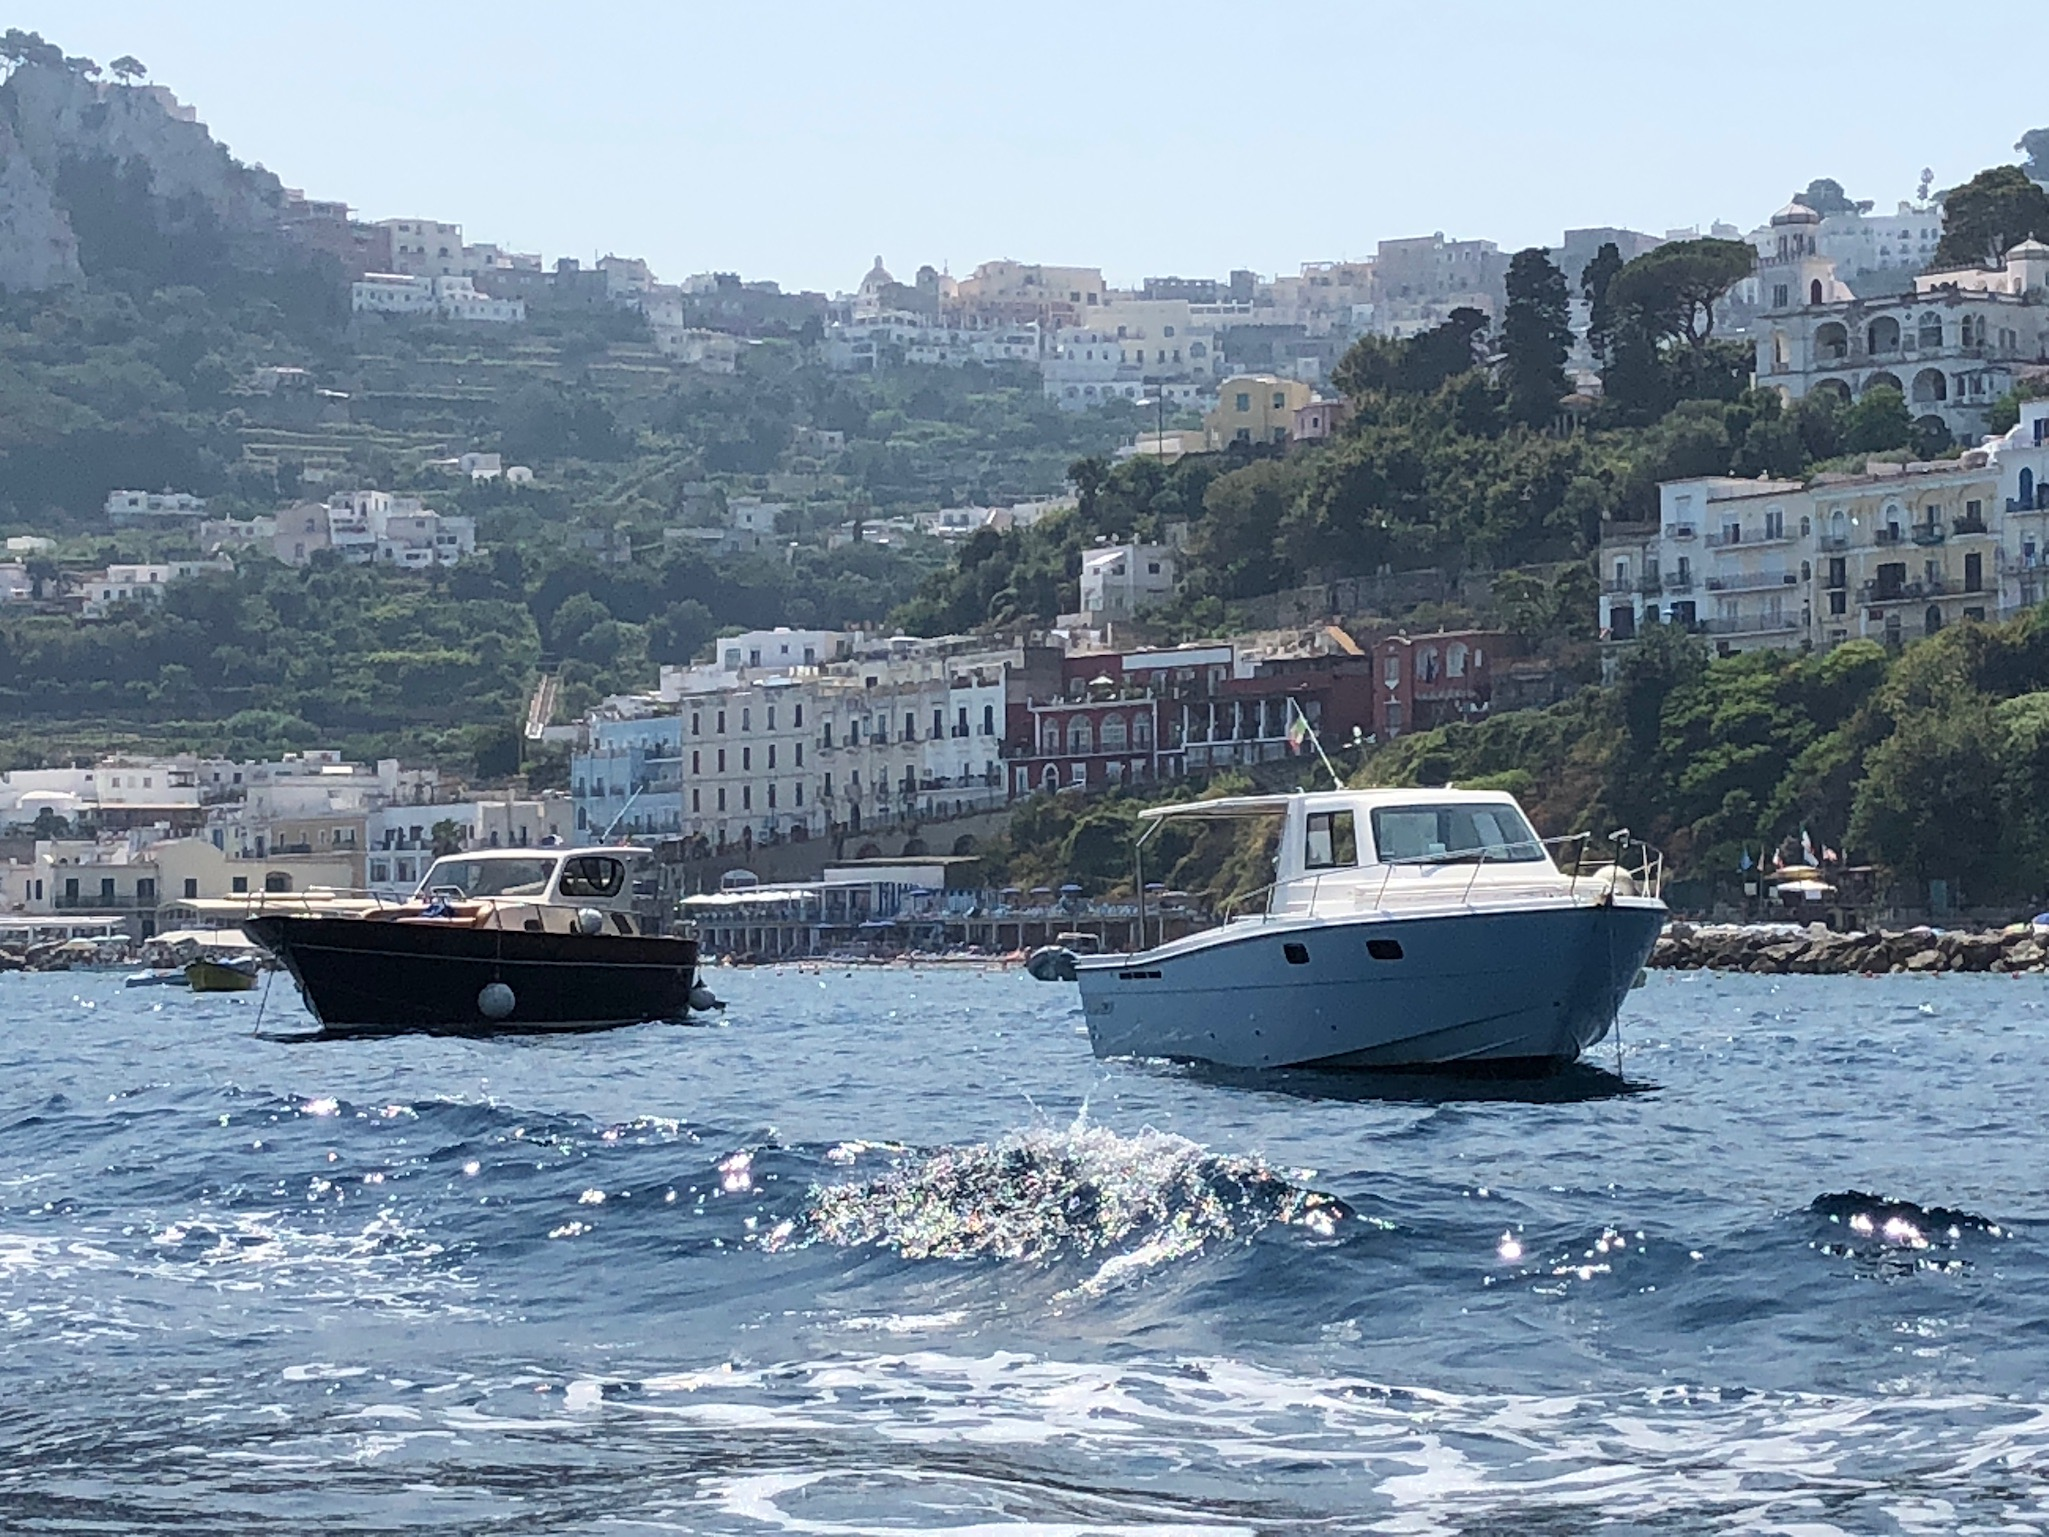 The way you get to Capri - by boat!